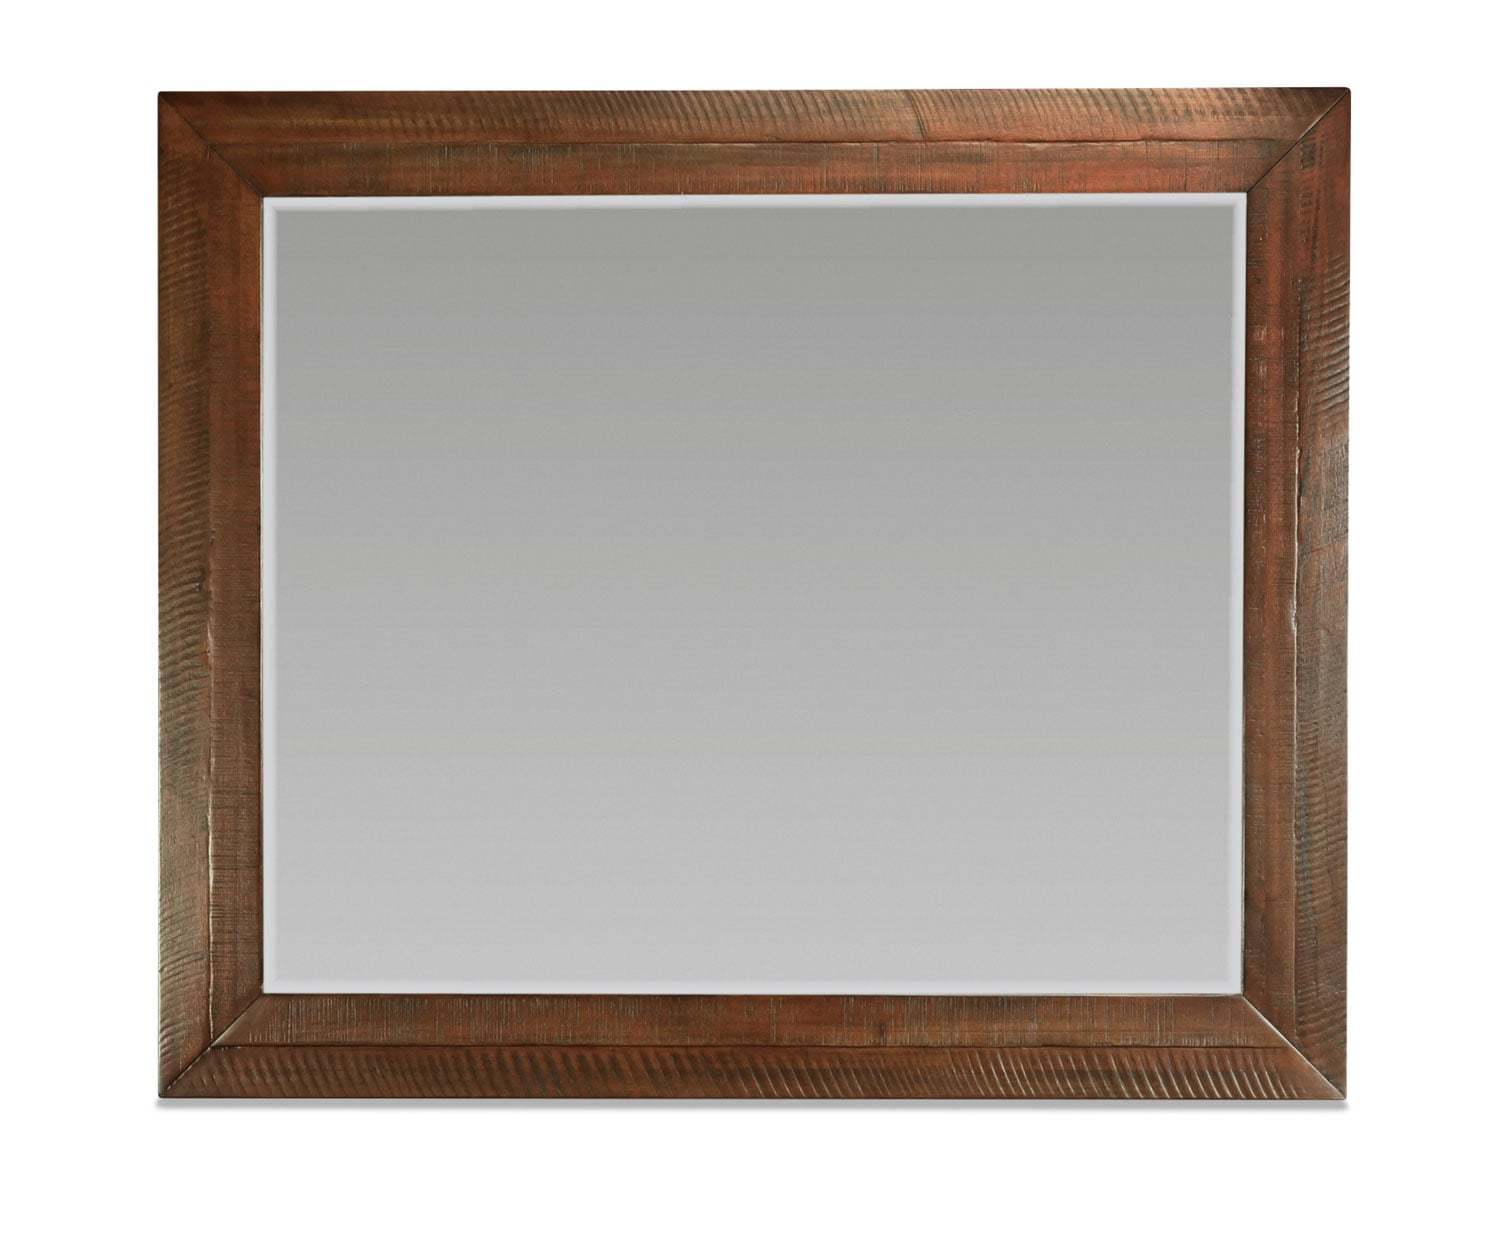 Weston Mirror - Mahogany